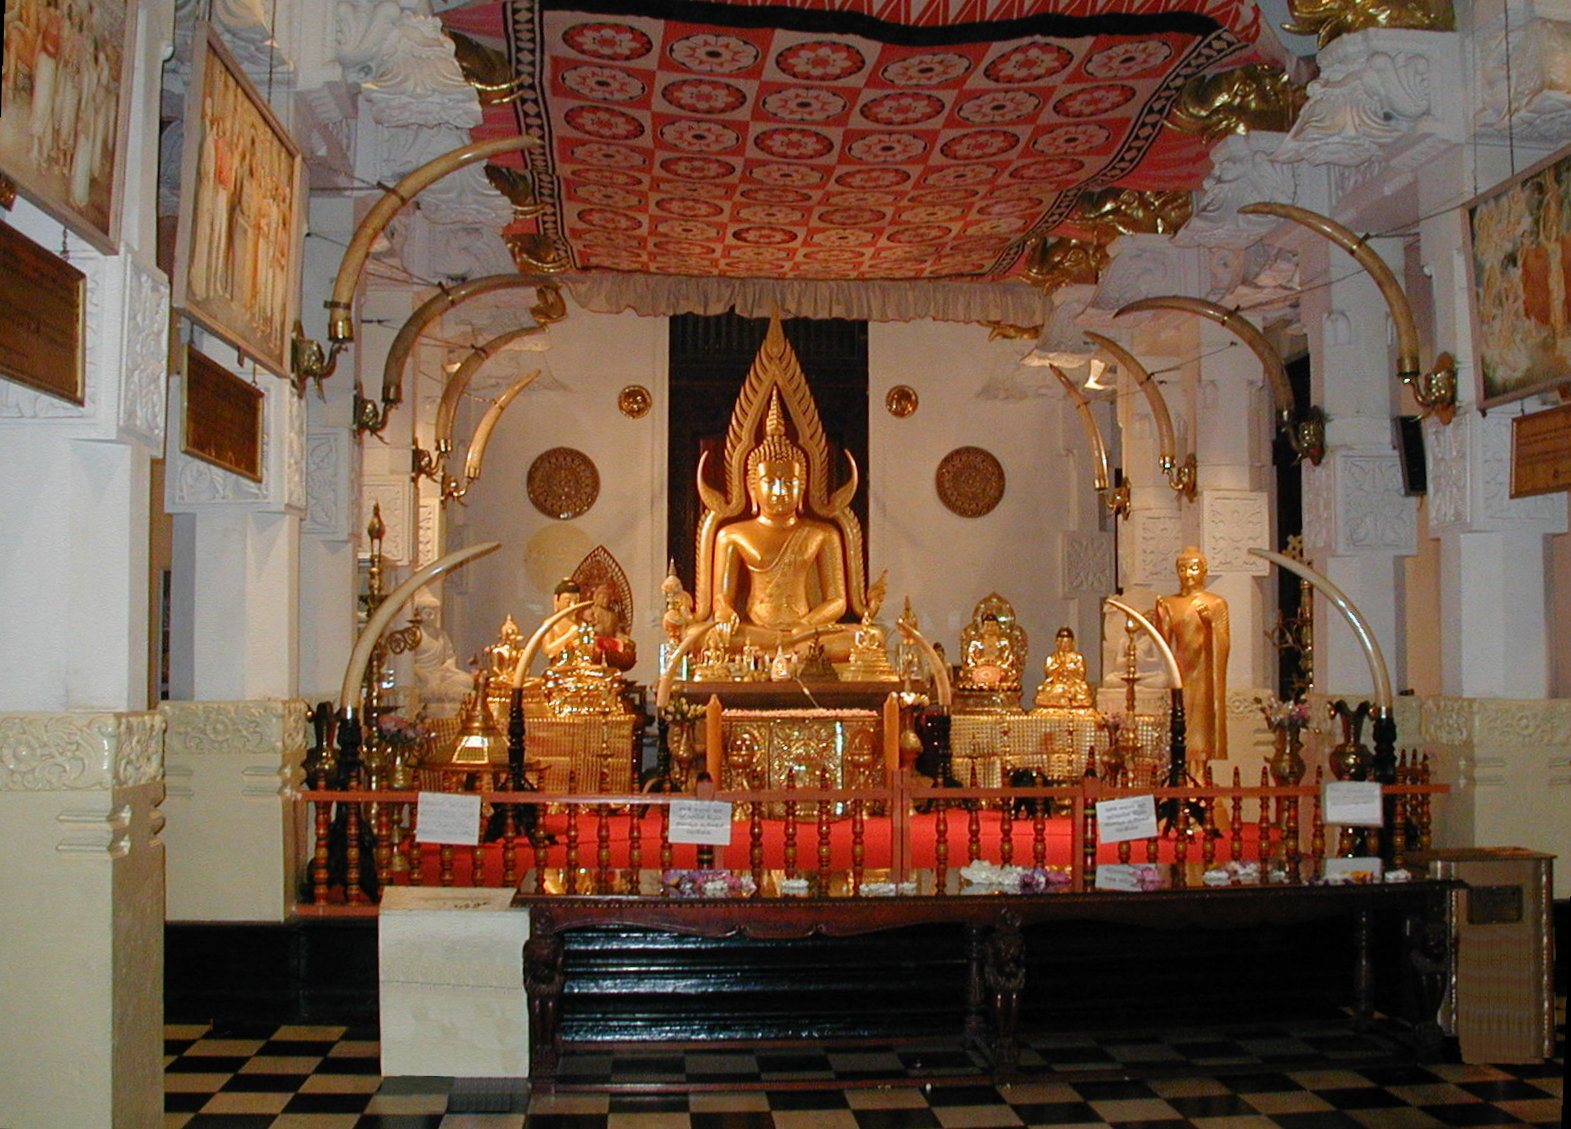 Temples of the Tooth, Sri Lanka